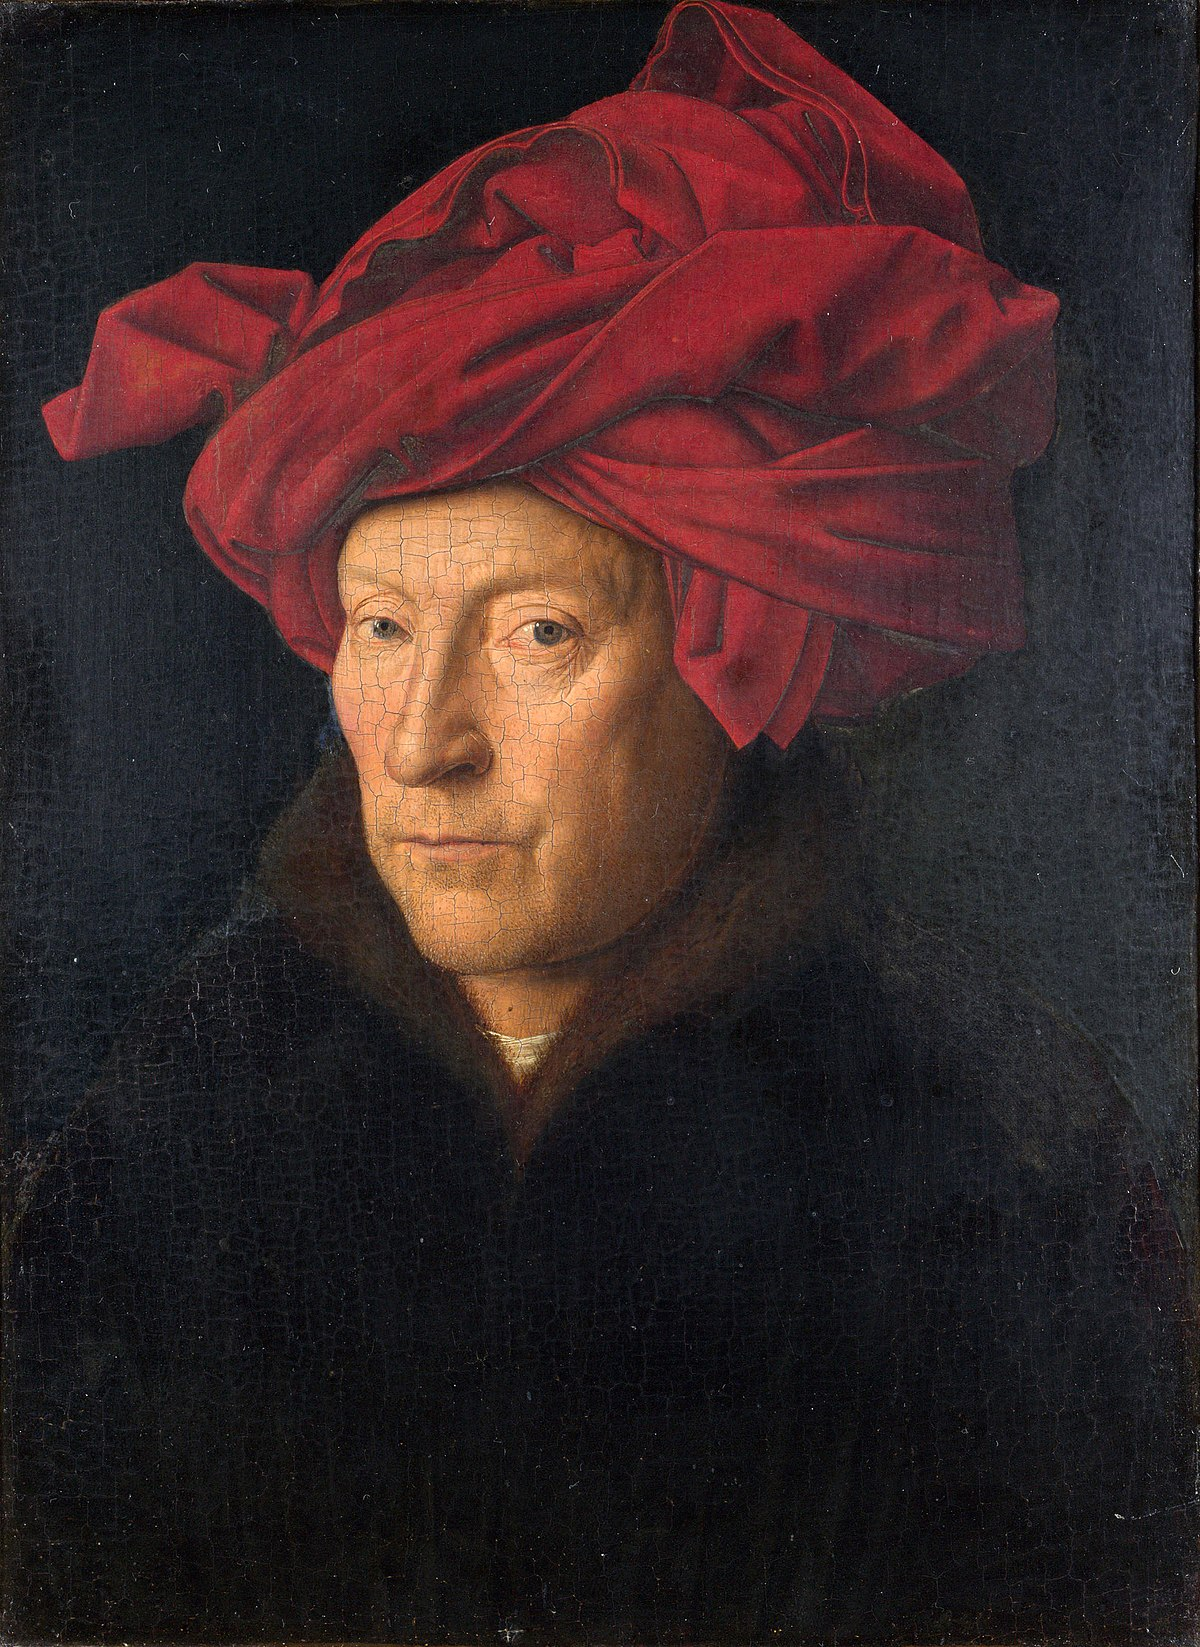 Portrait of a Man by Jan van Eyck-small.jpg